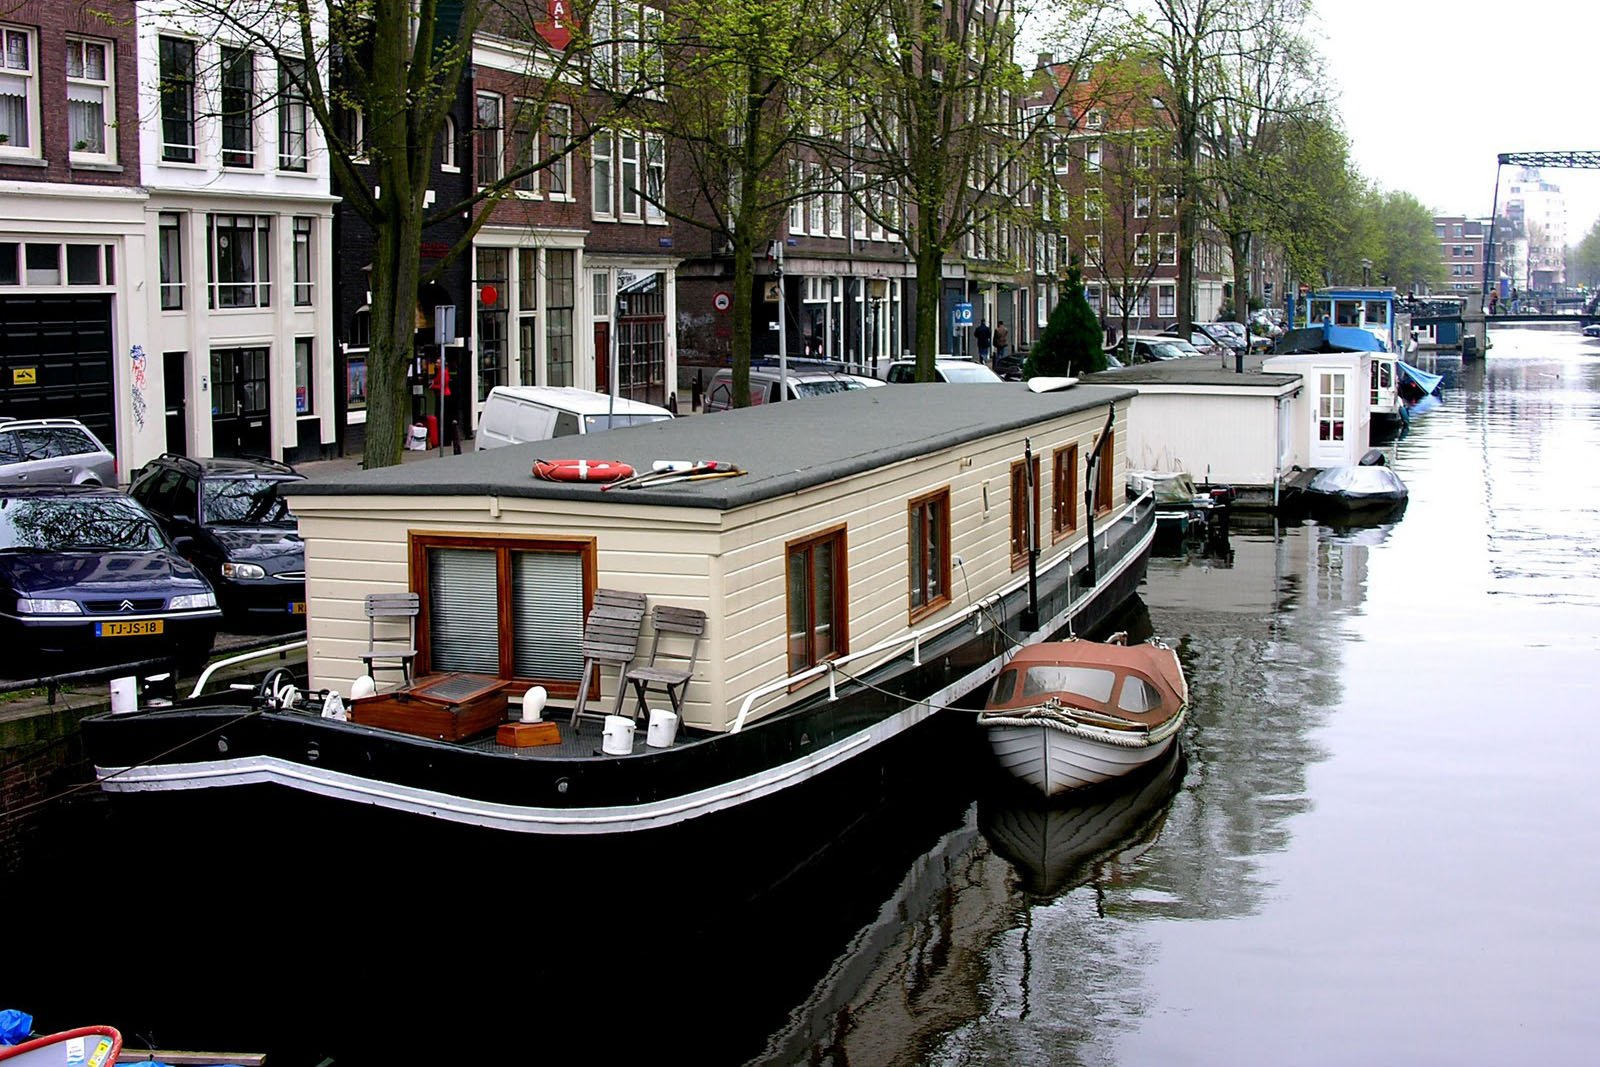 How to spend a night in a houseboat in Amsterdam